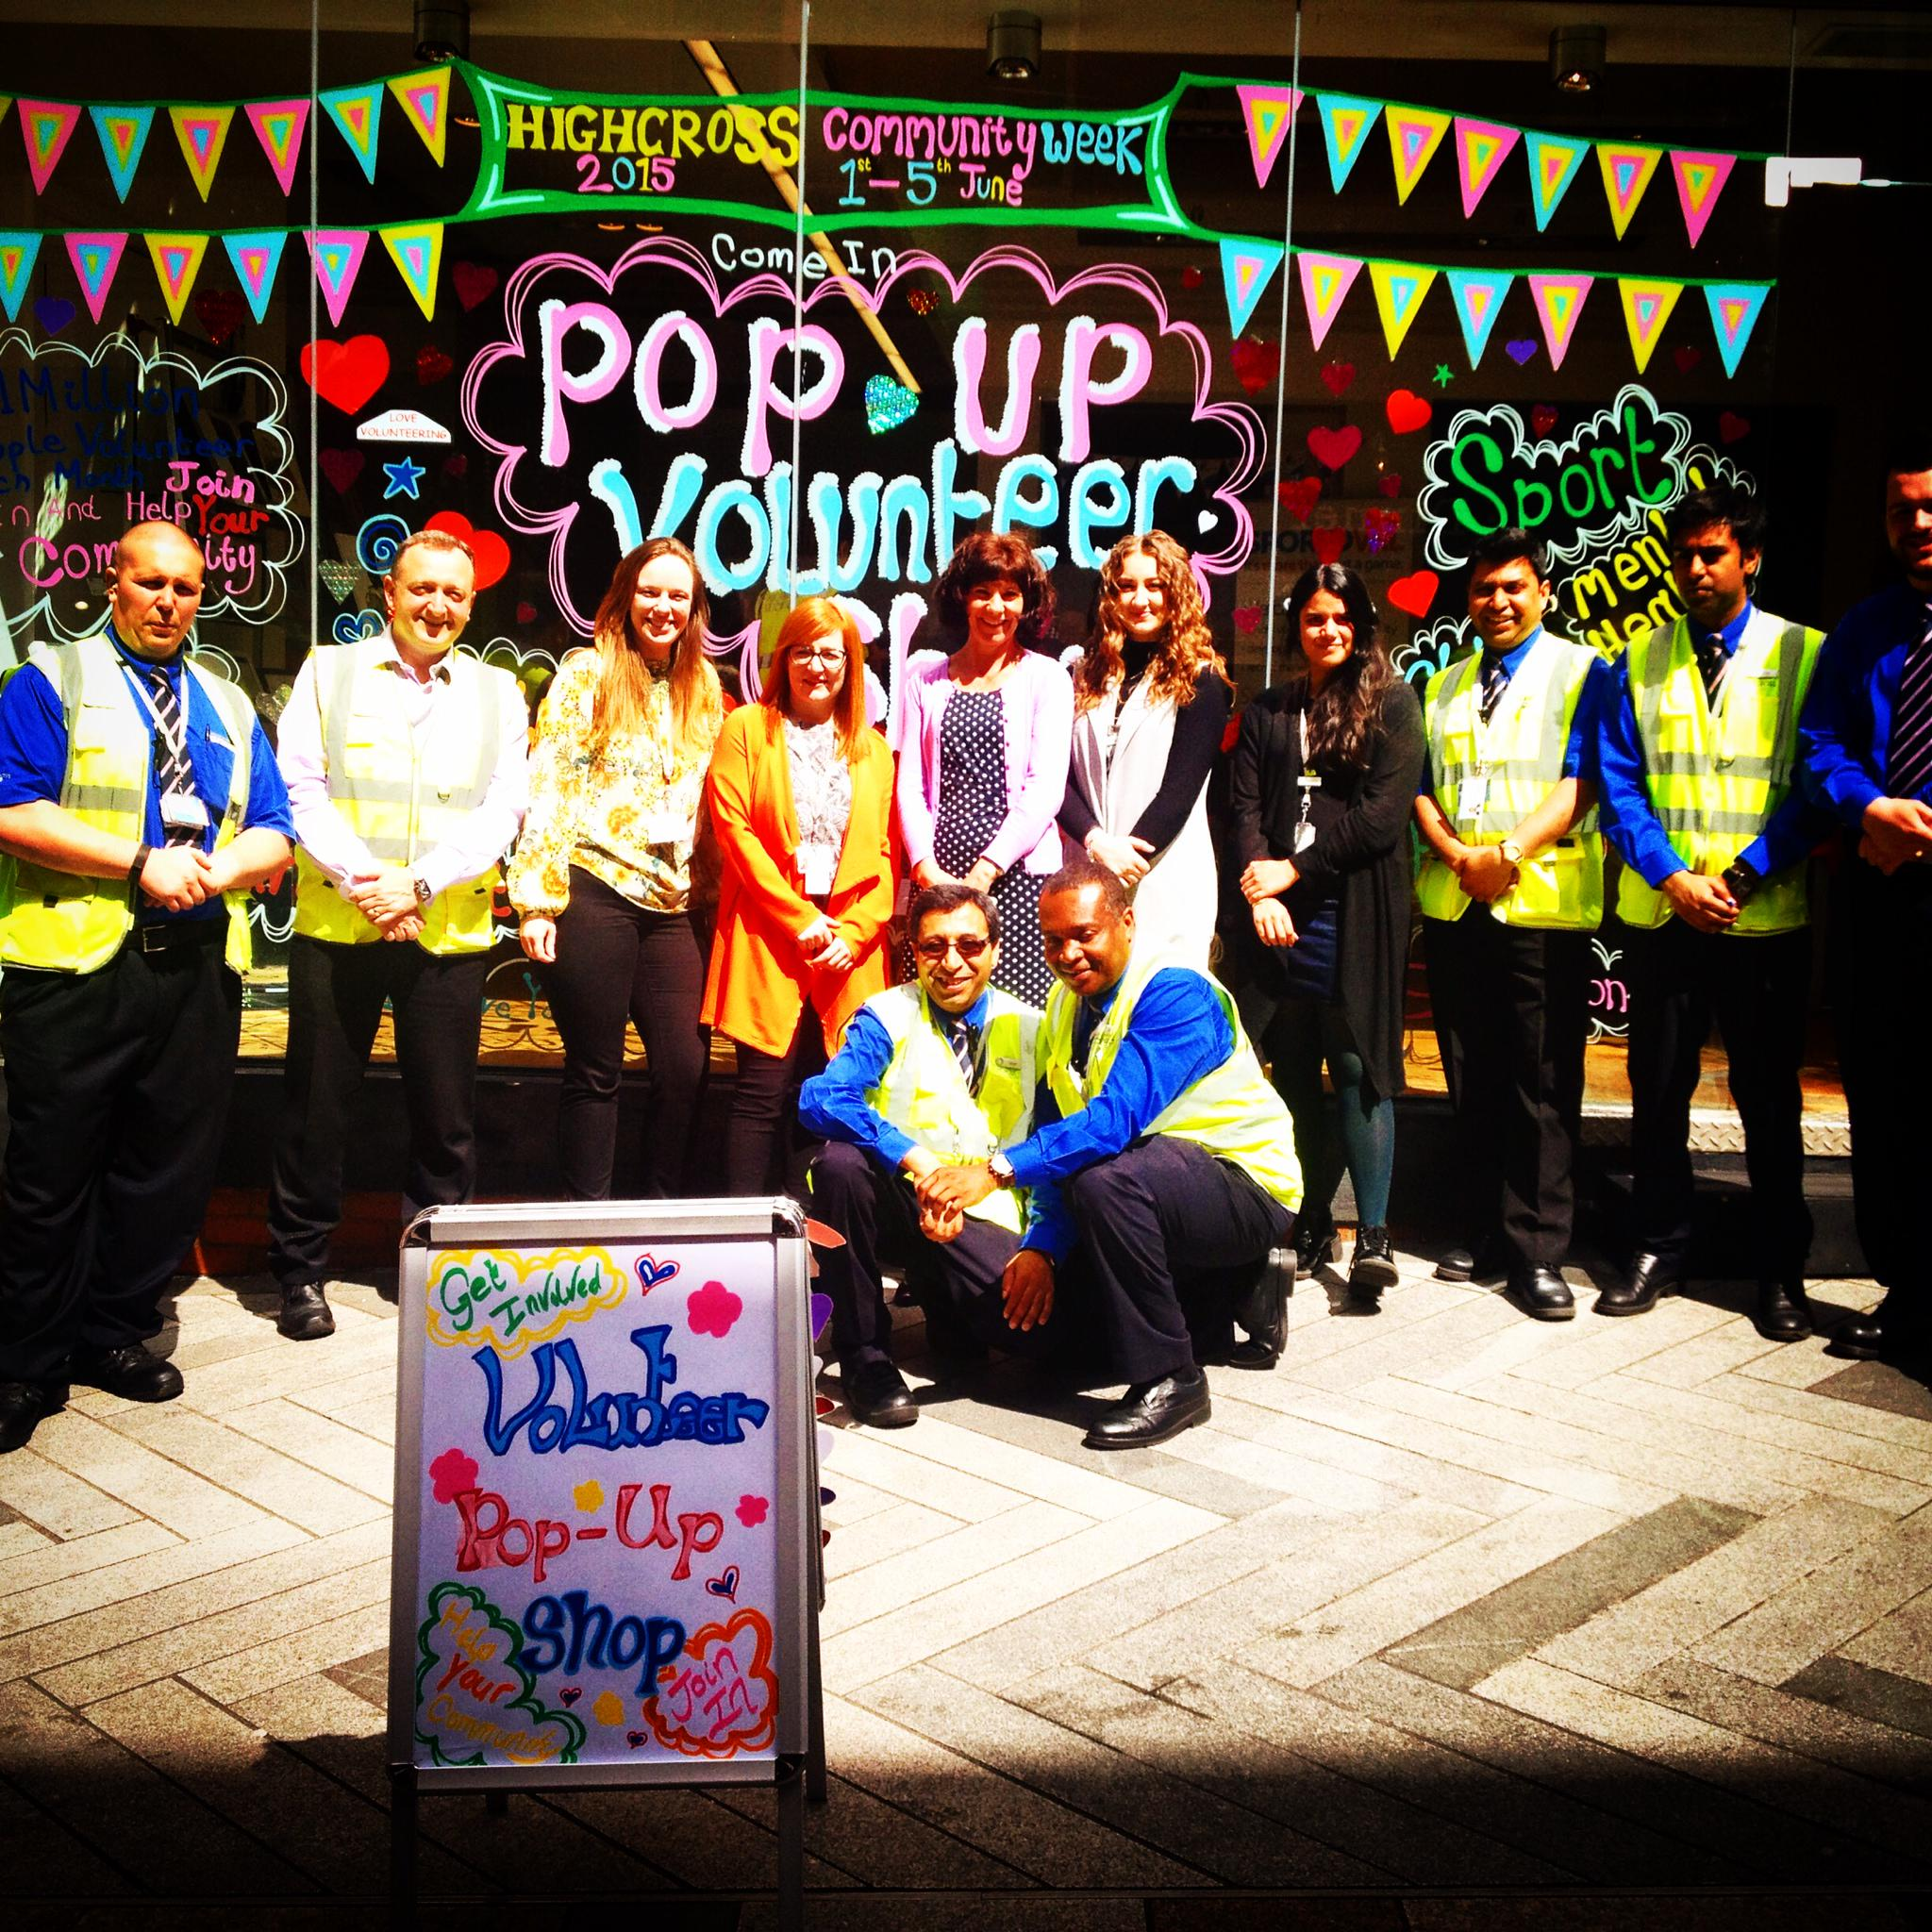 Great working with @VALOnline promoting #volunteering #opps @Highcross with their amazing staff supporting #NVW2015 http://t.co/QUATaMGPqp